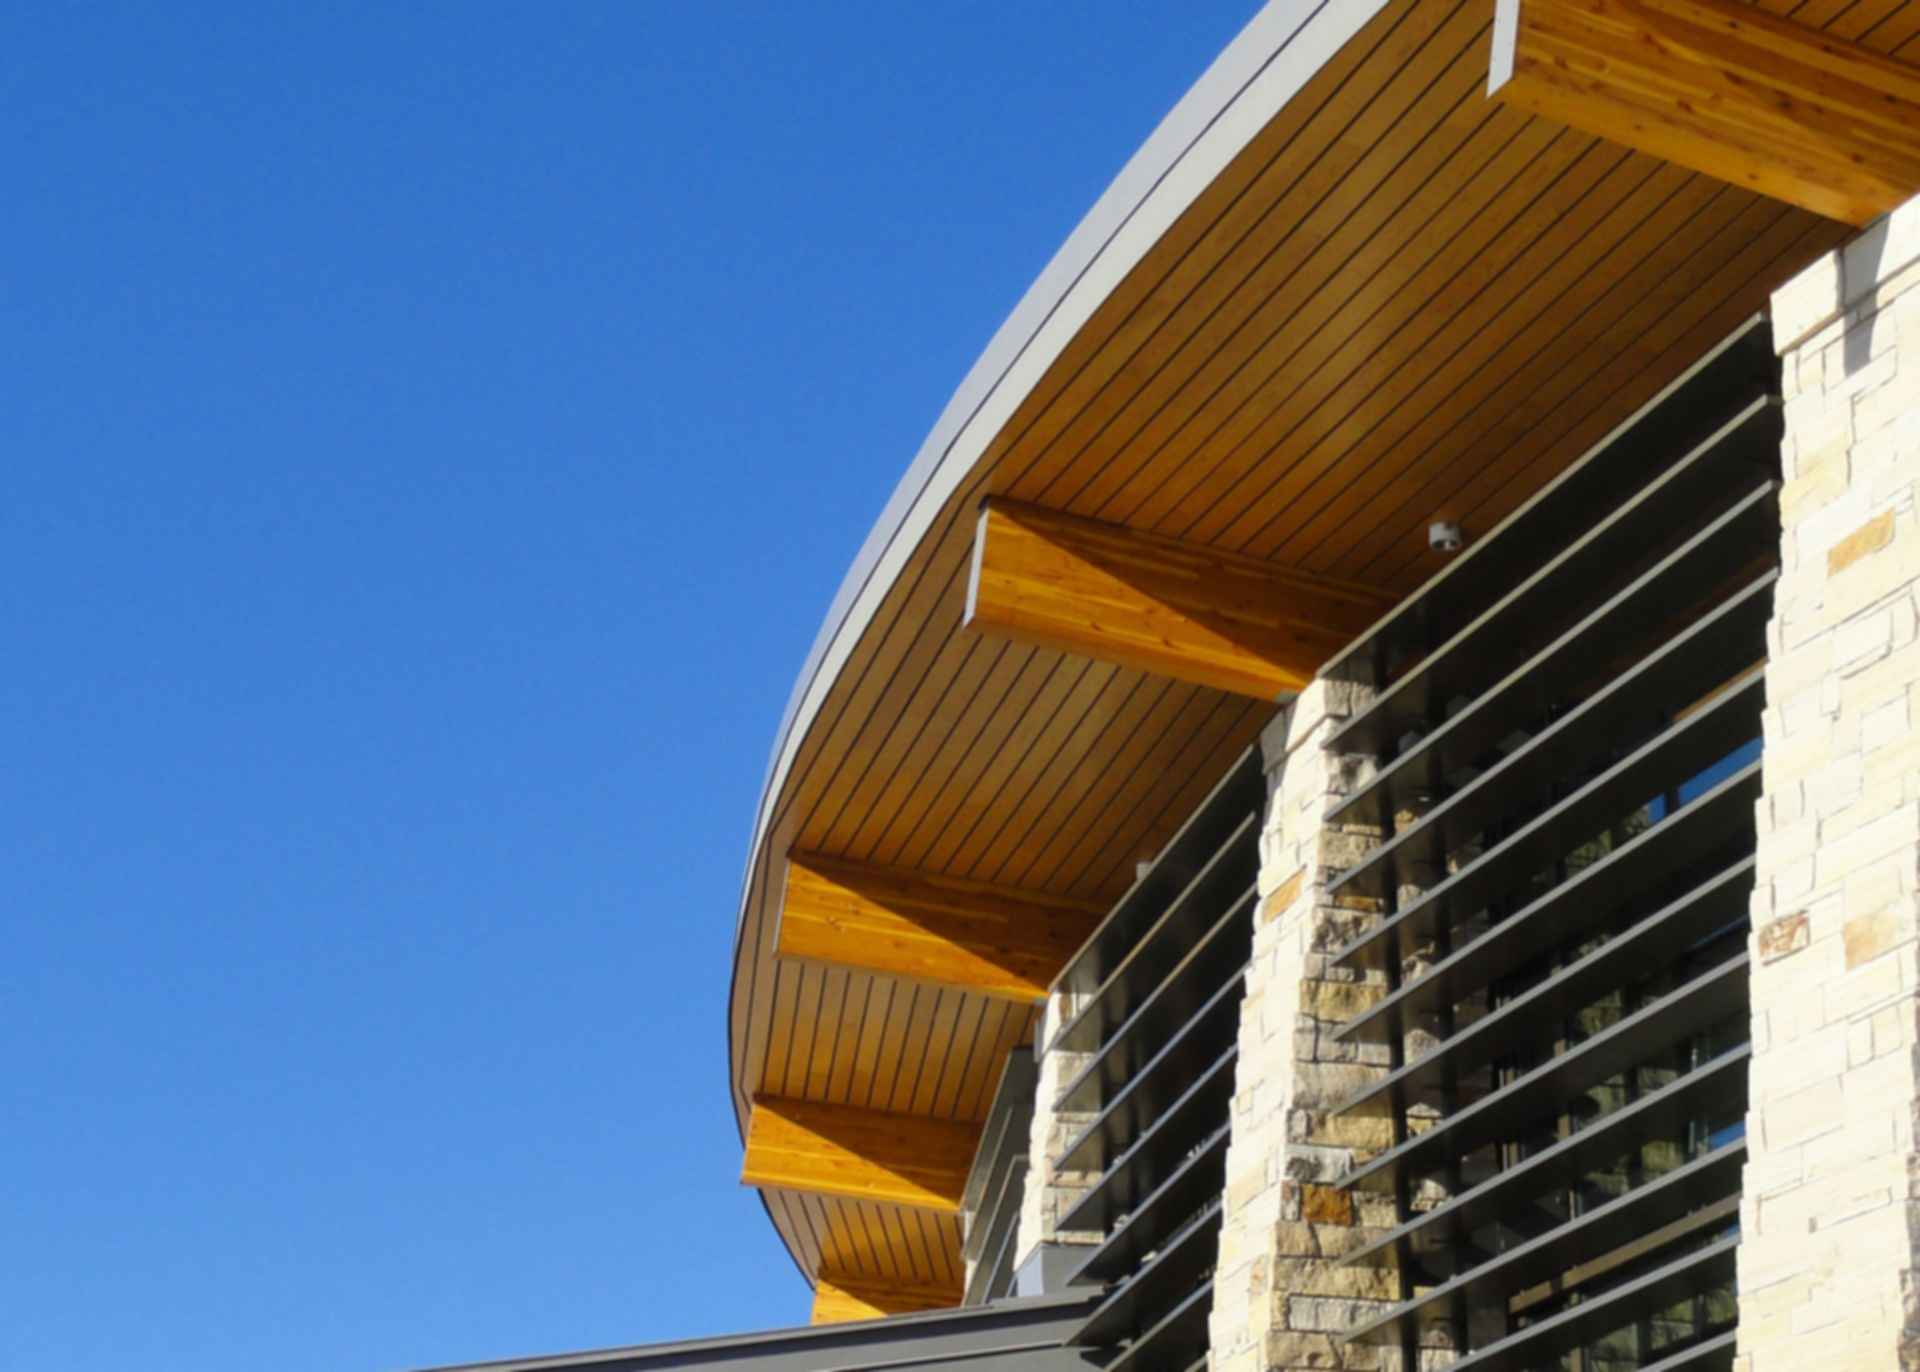 Southern Ute Cultural Center - Exterior/Roofing